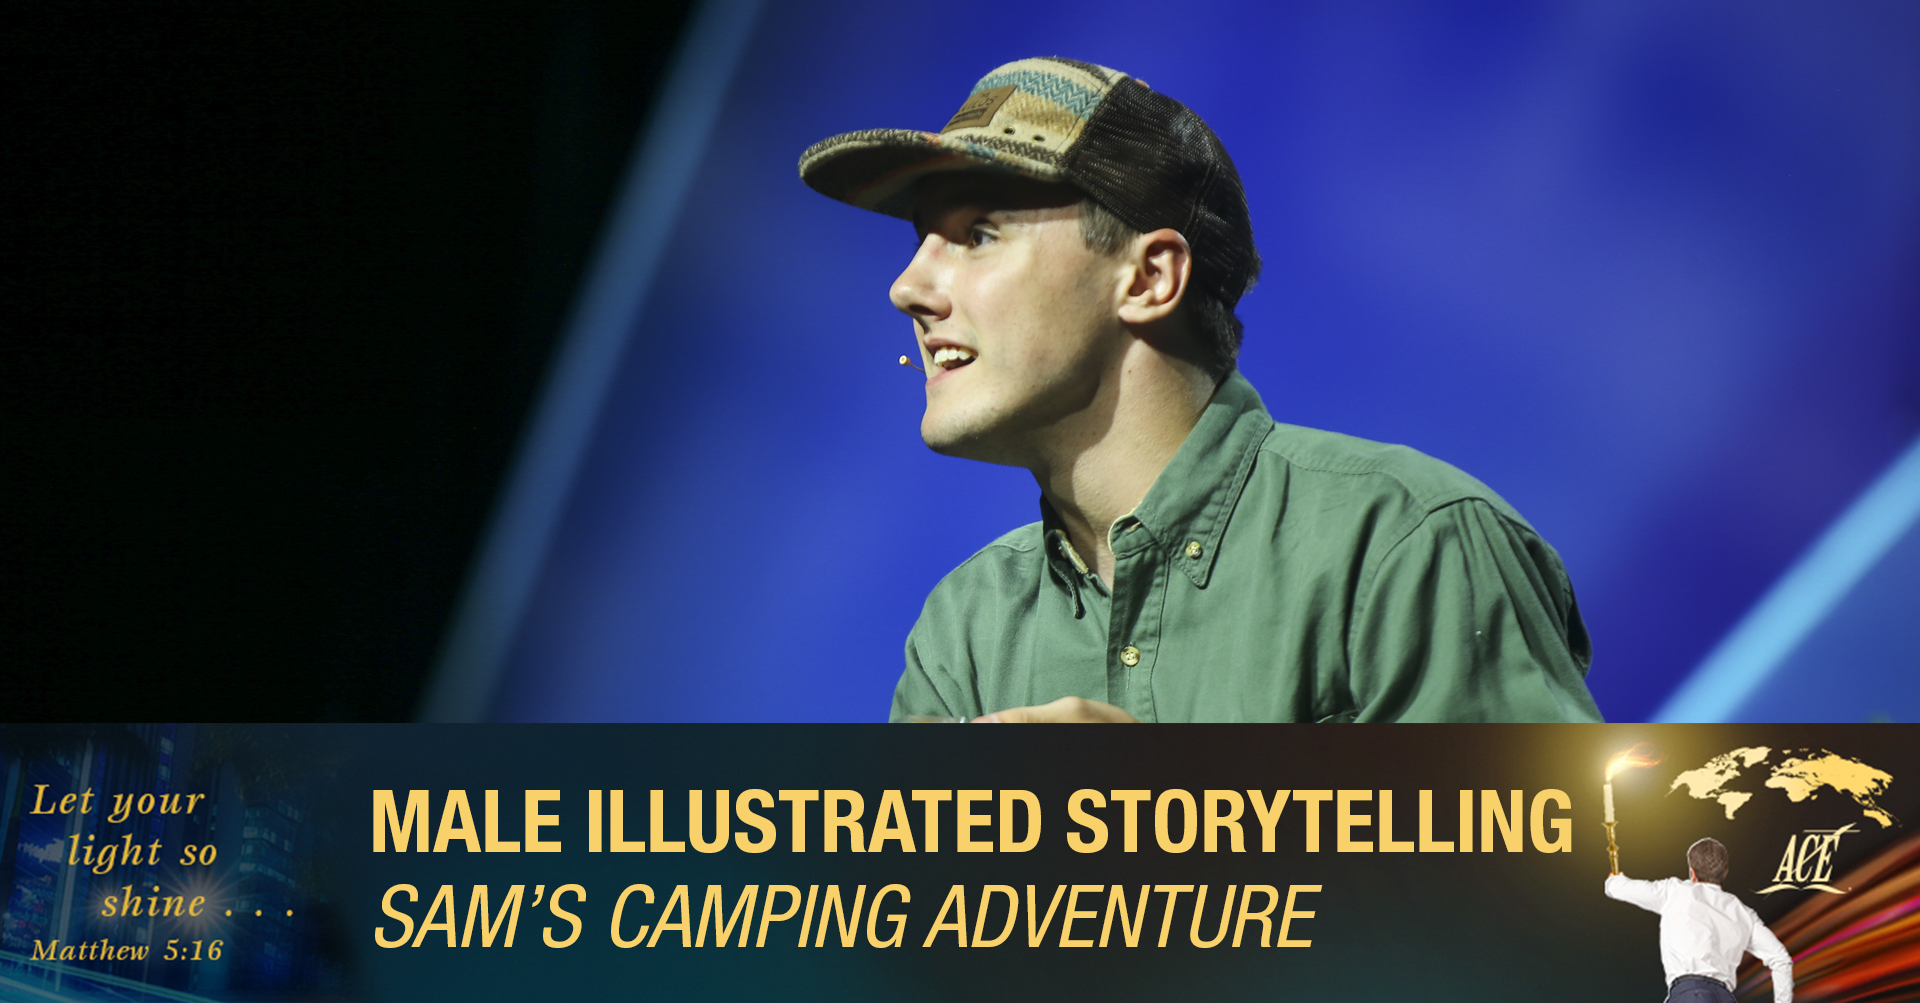 """Male Illustrated Storytelling, """"Sam's Camping Adventure"""" - ISC 2019"""